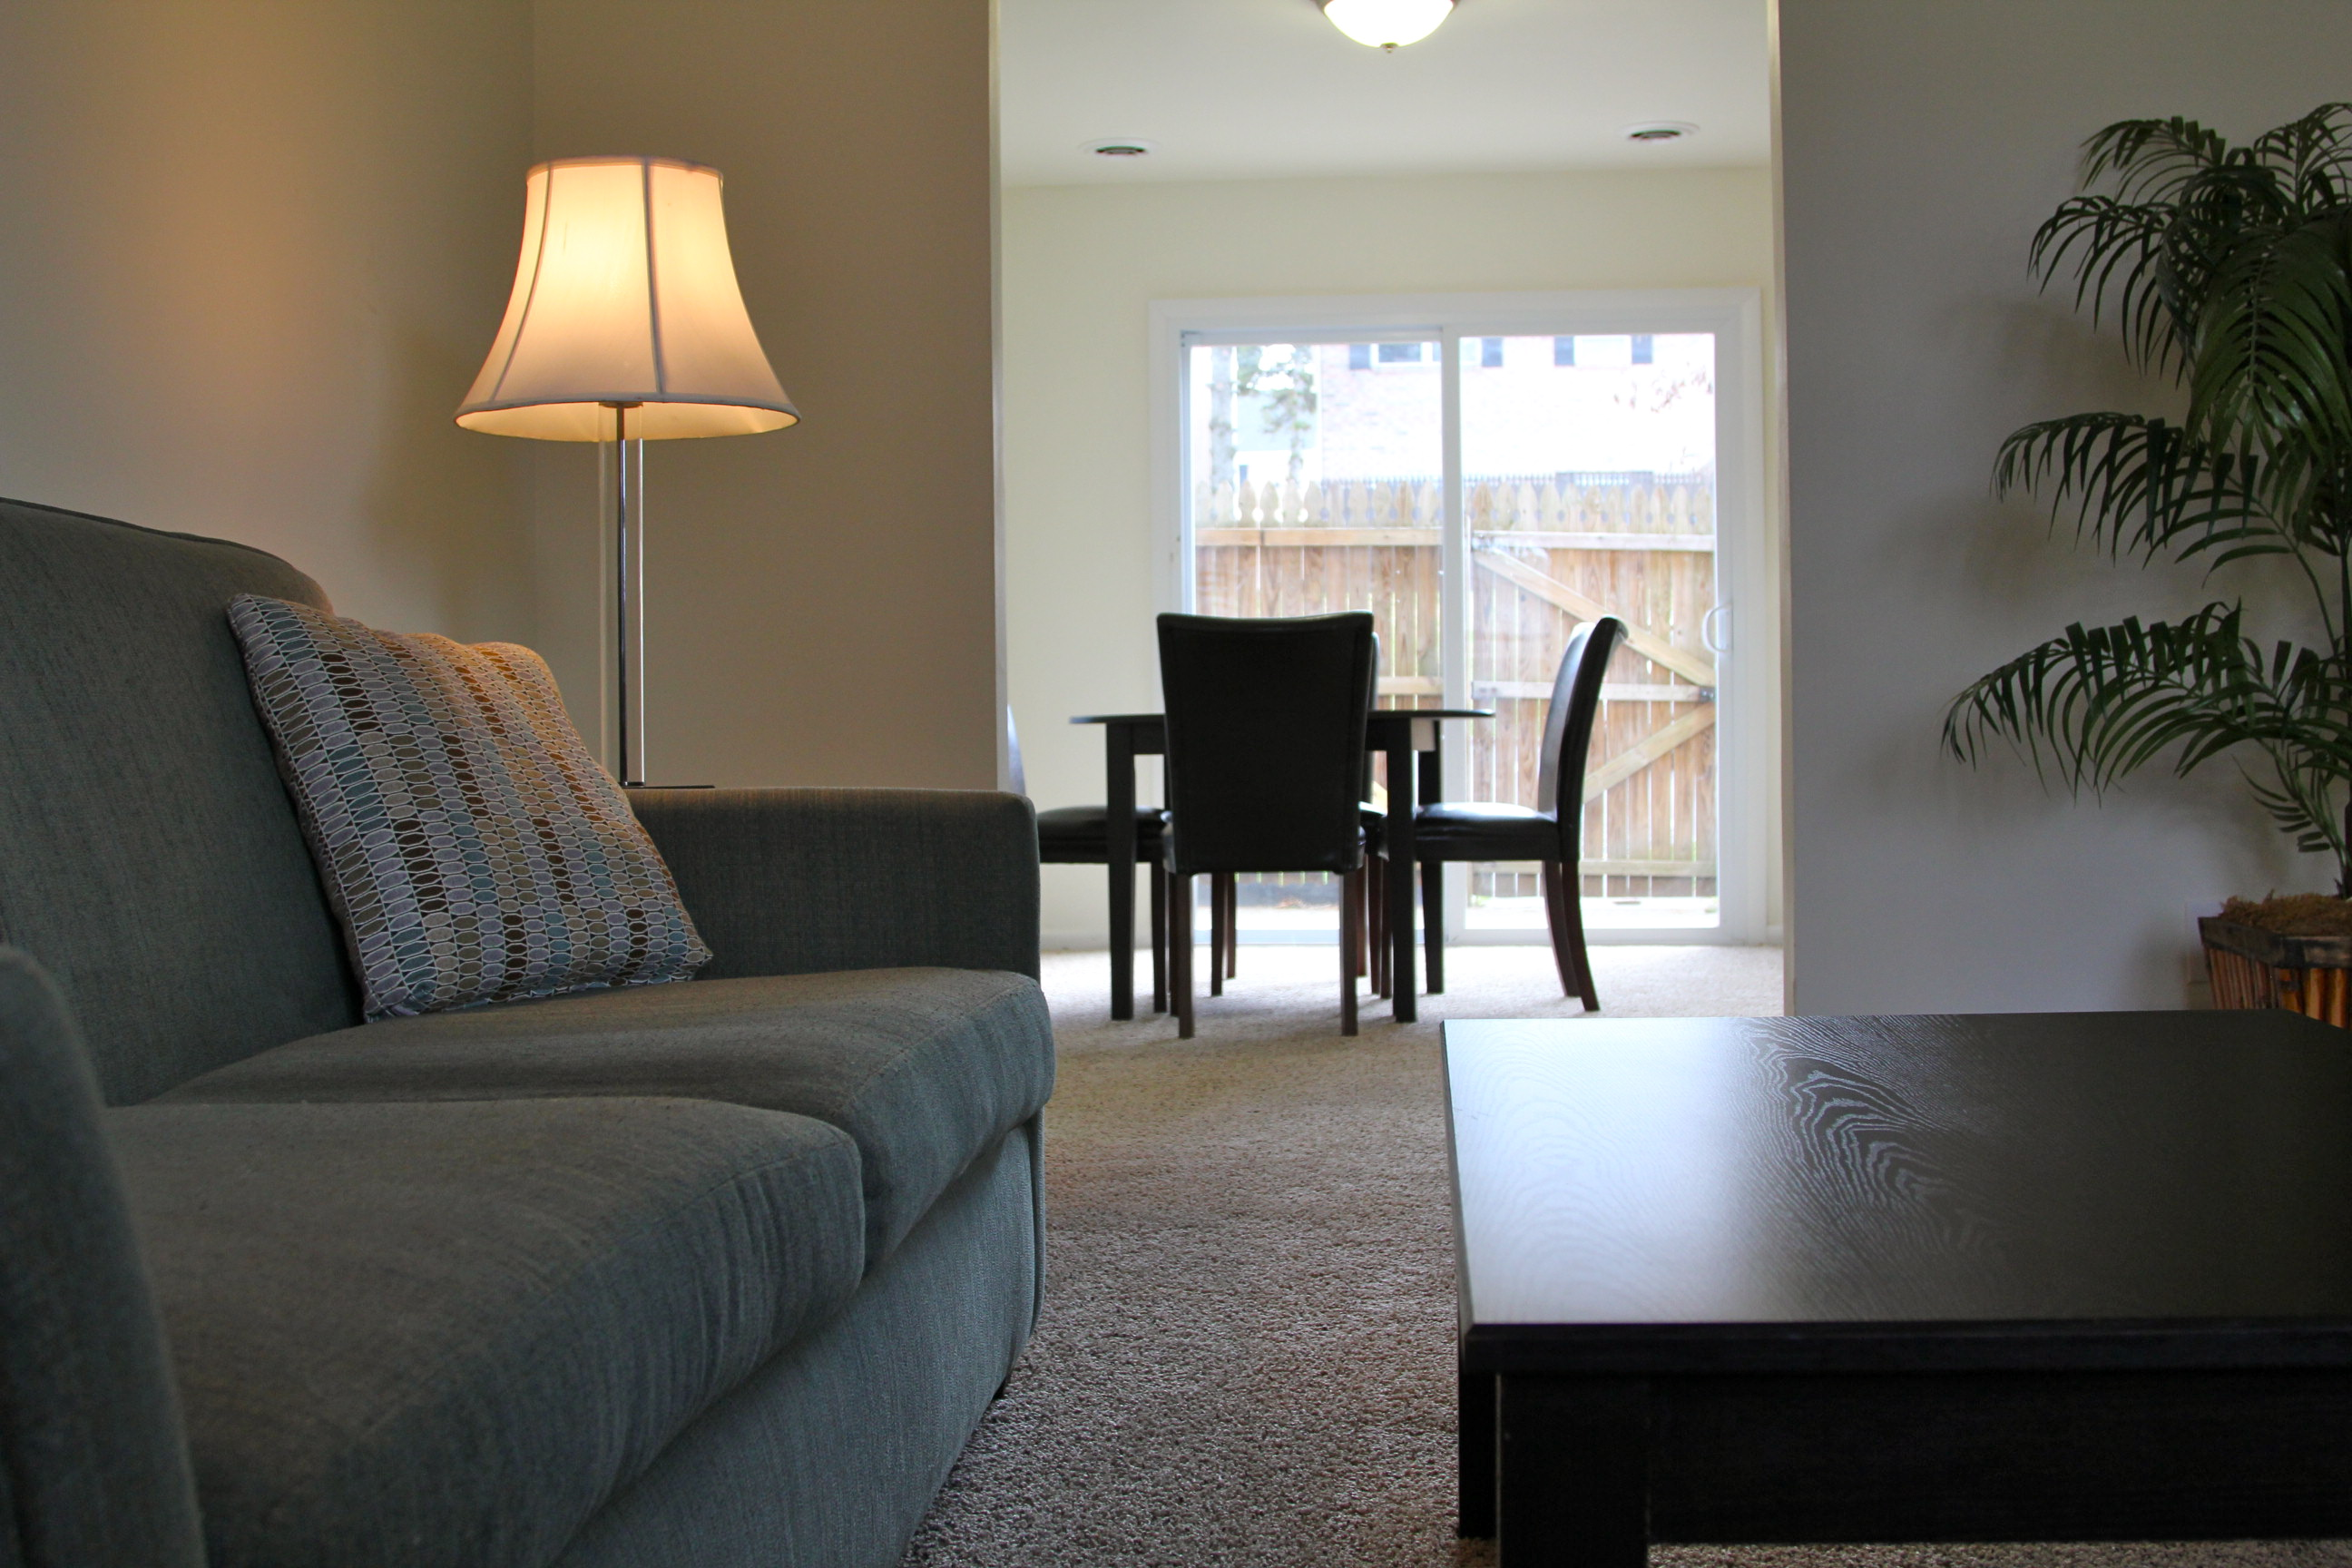 Sturbridge Square Offers Apartment and Townhome Options